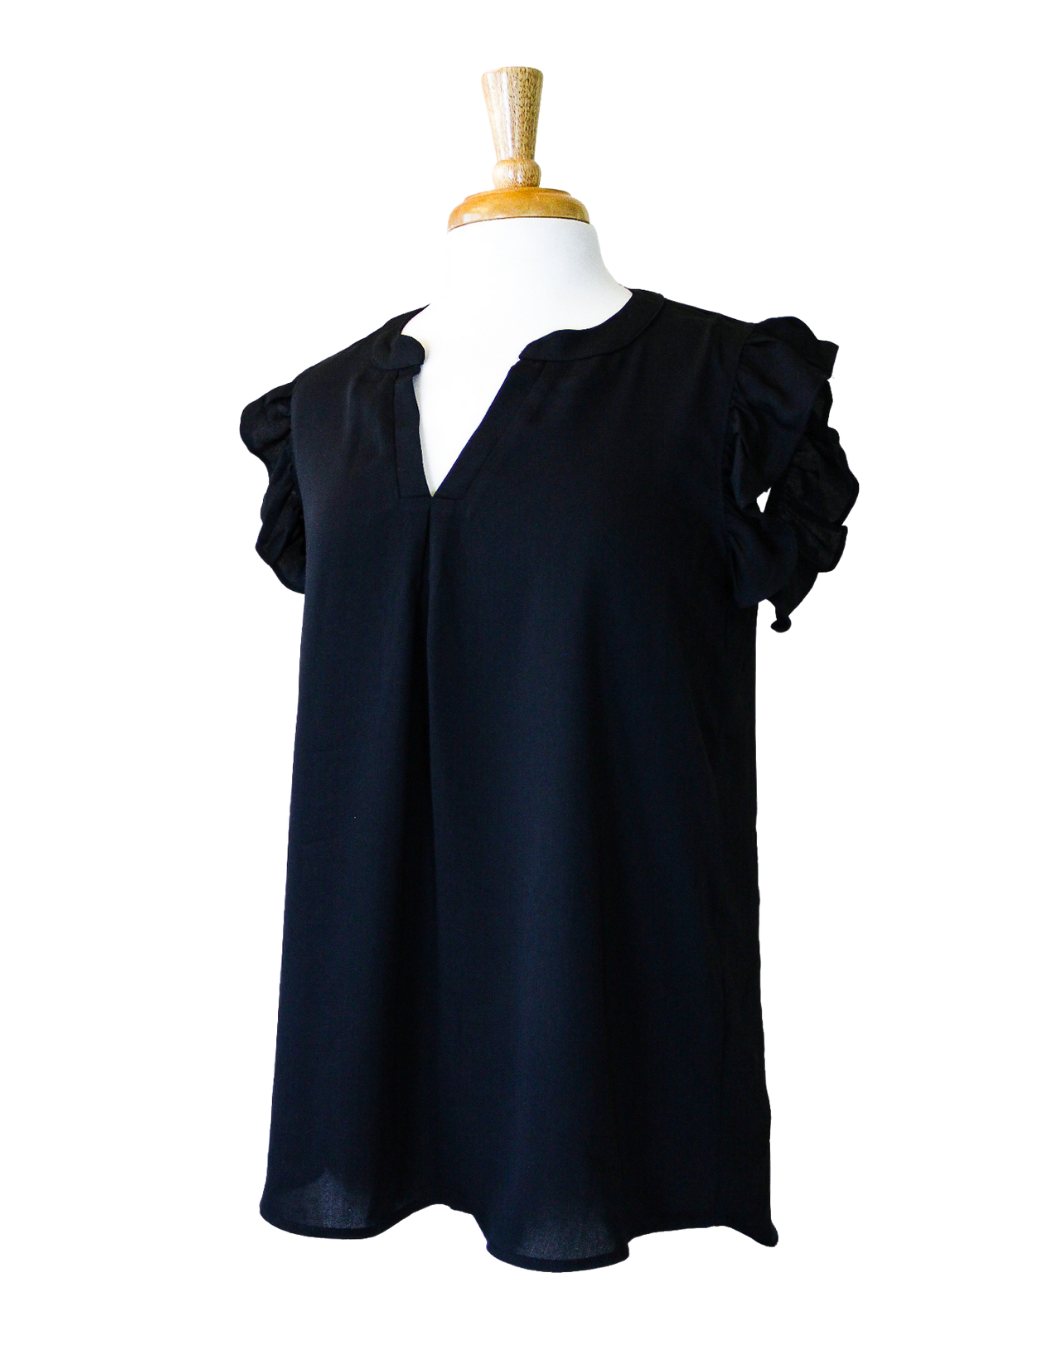 Fashions by RoPuddles black ruffle sleeve top